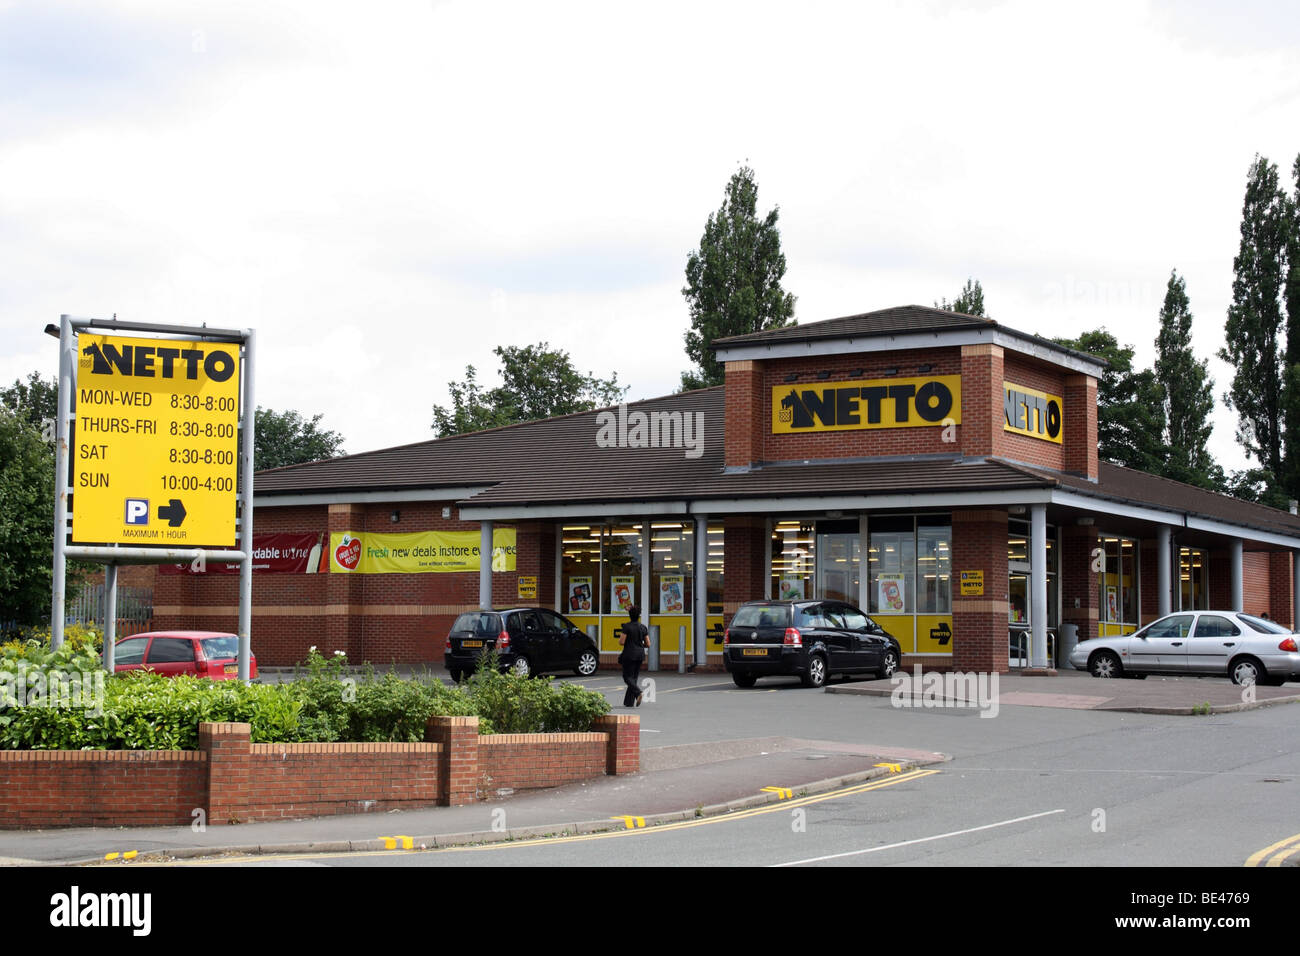 Netto Logo High Resolution Stock Photography and Images   Alamy